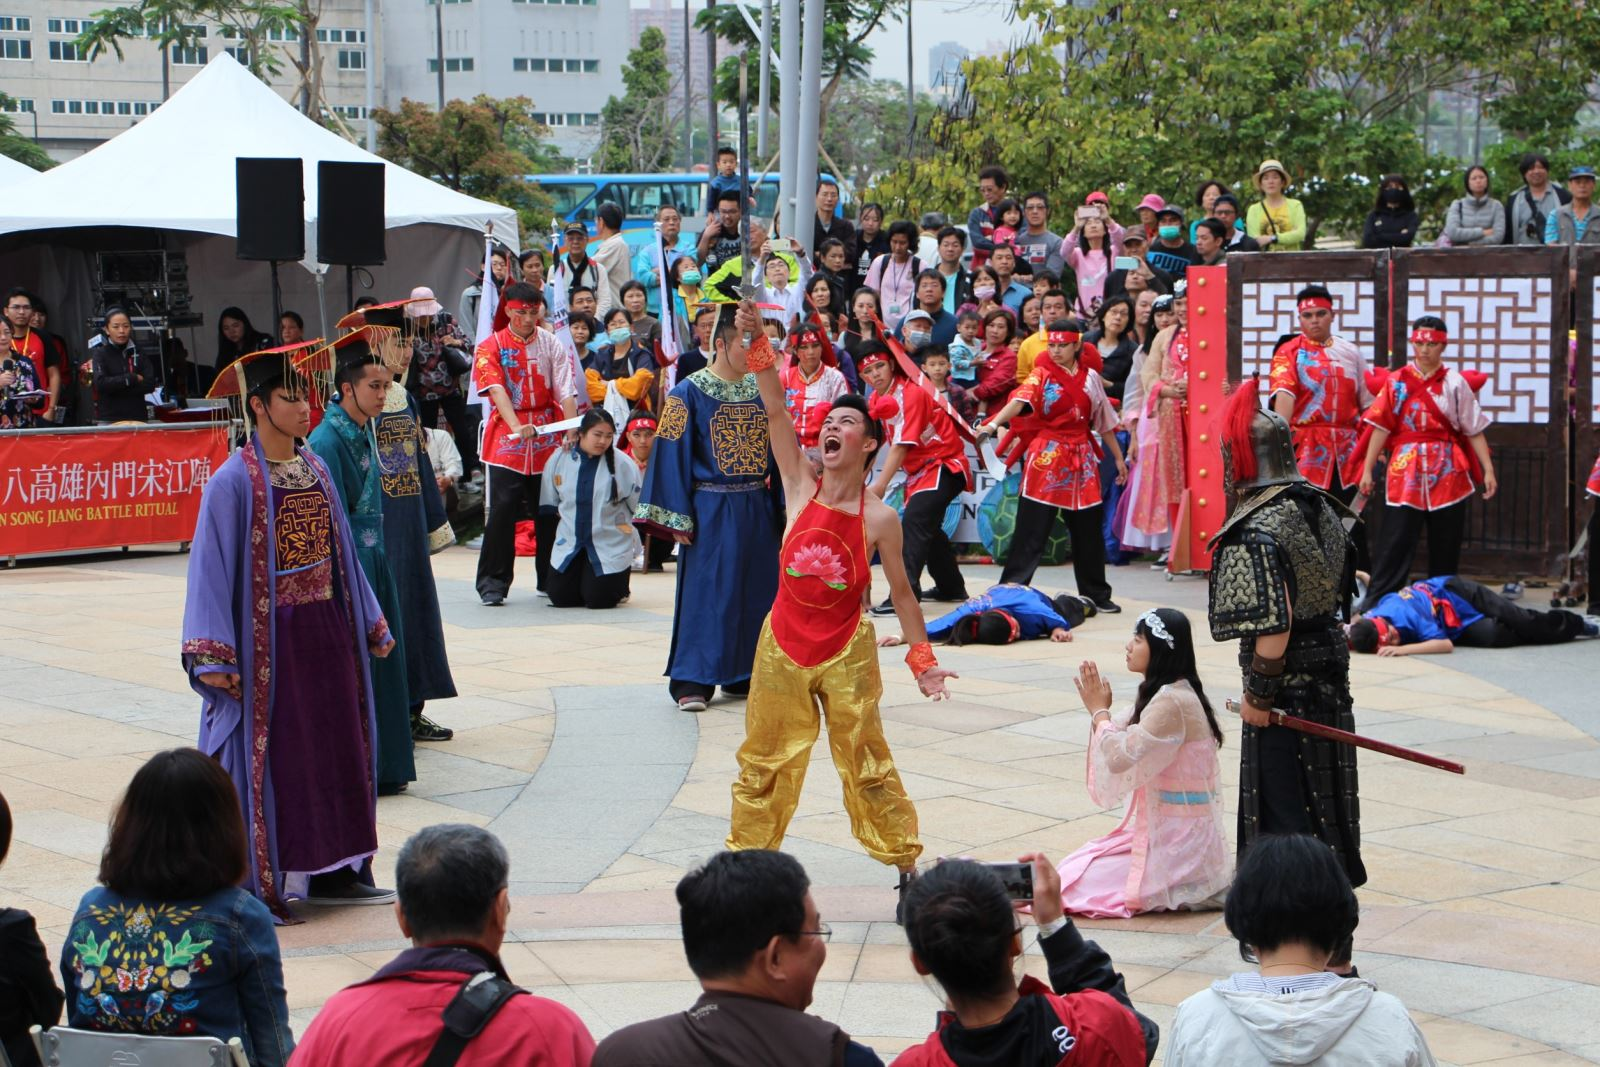 Song Jiang battle art performed at Dream Mall